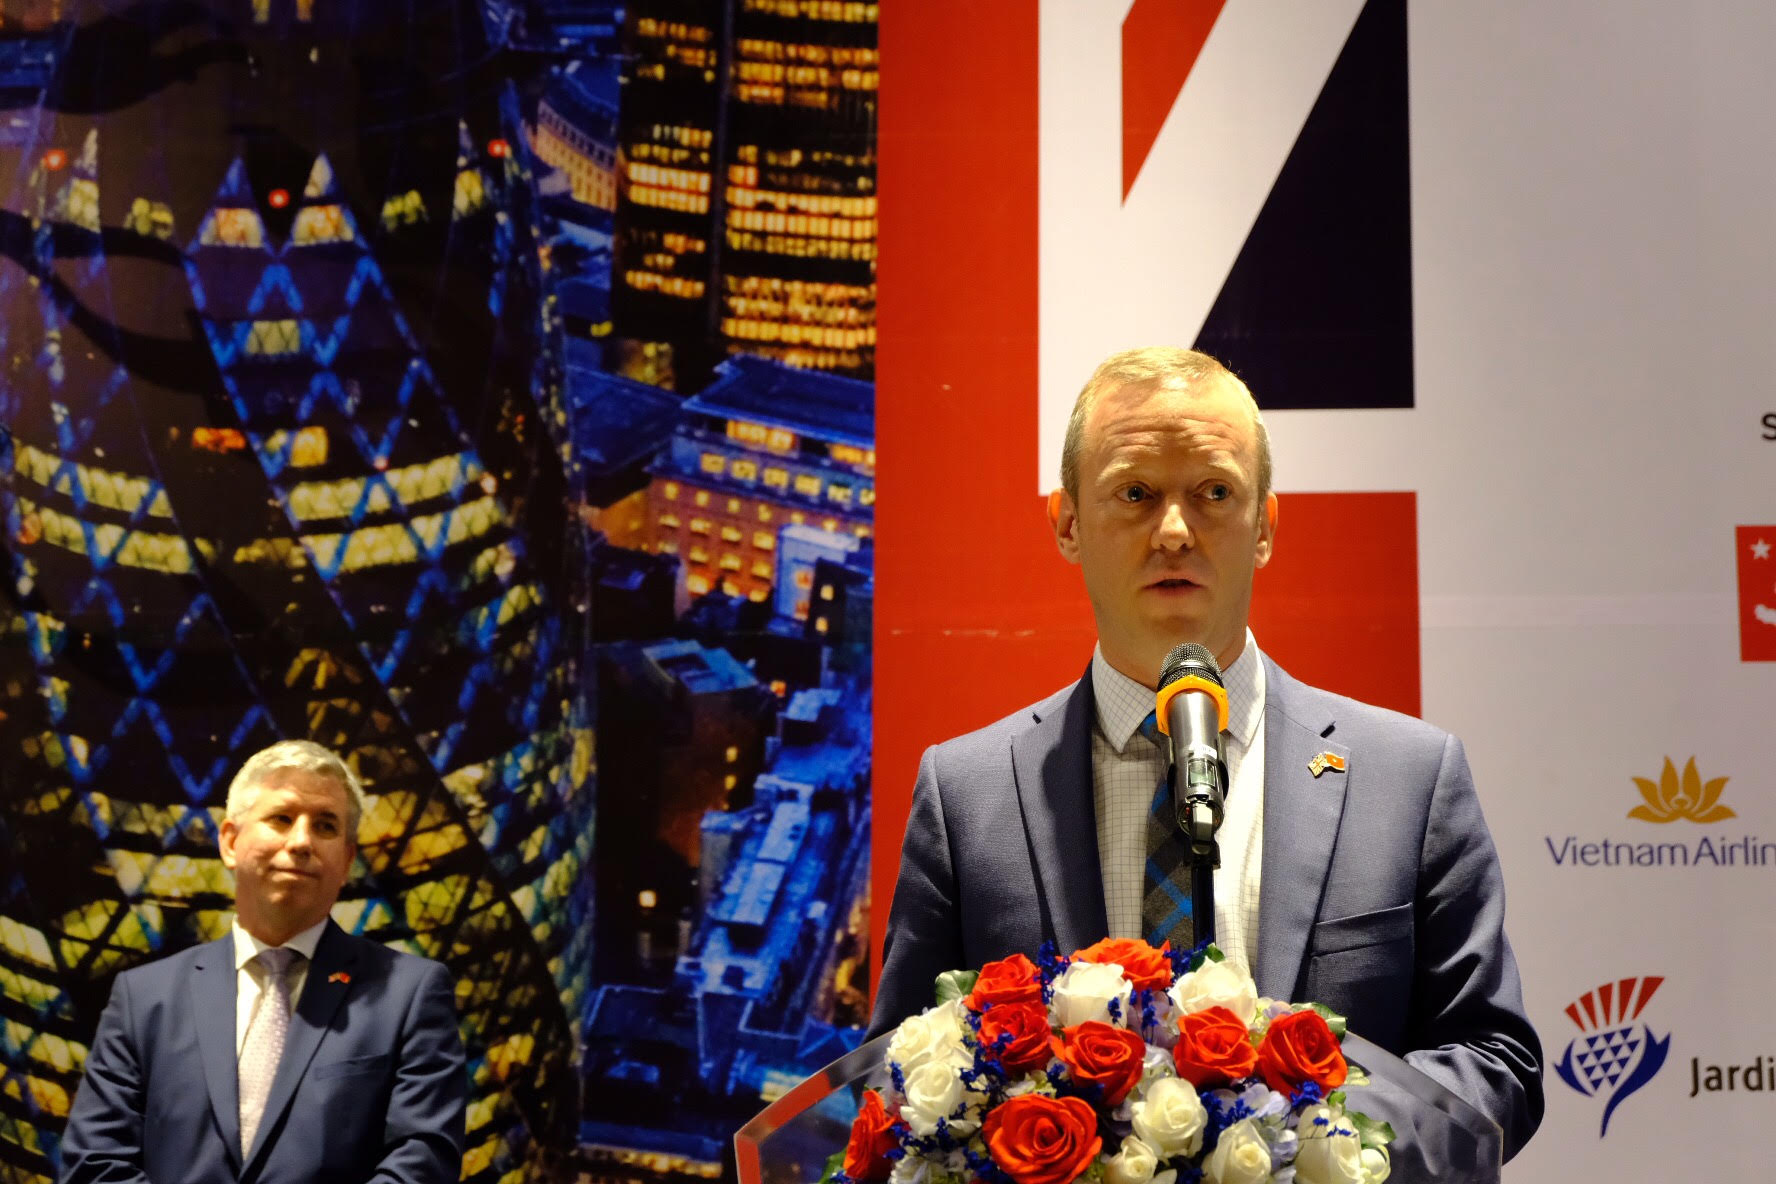 British Ambassador to Vietnam Gareth Ward speaks at a business reception in Ho Chi Minh City on December 2, 2018. Photo: Tran Phuong